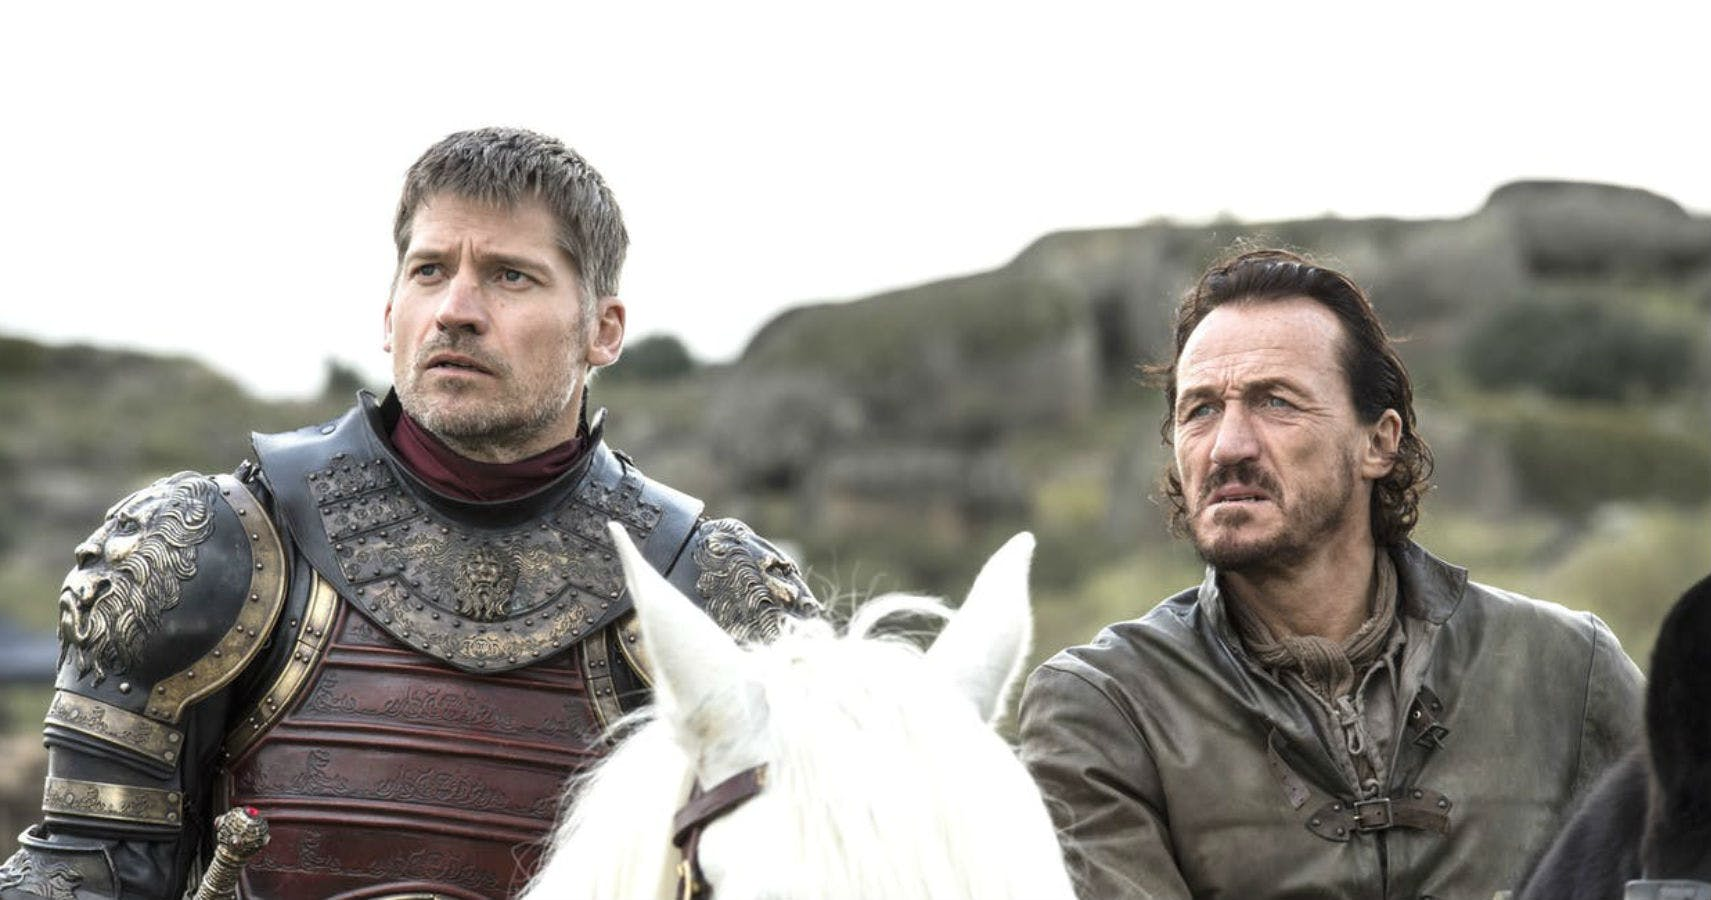 The Game Of Thrones Prequel Will Not Feature Lannisters Or Dragons